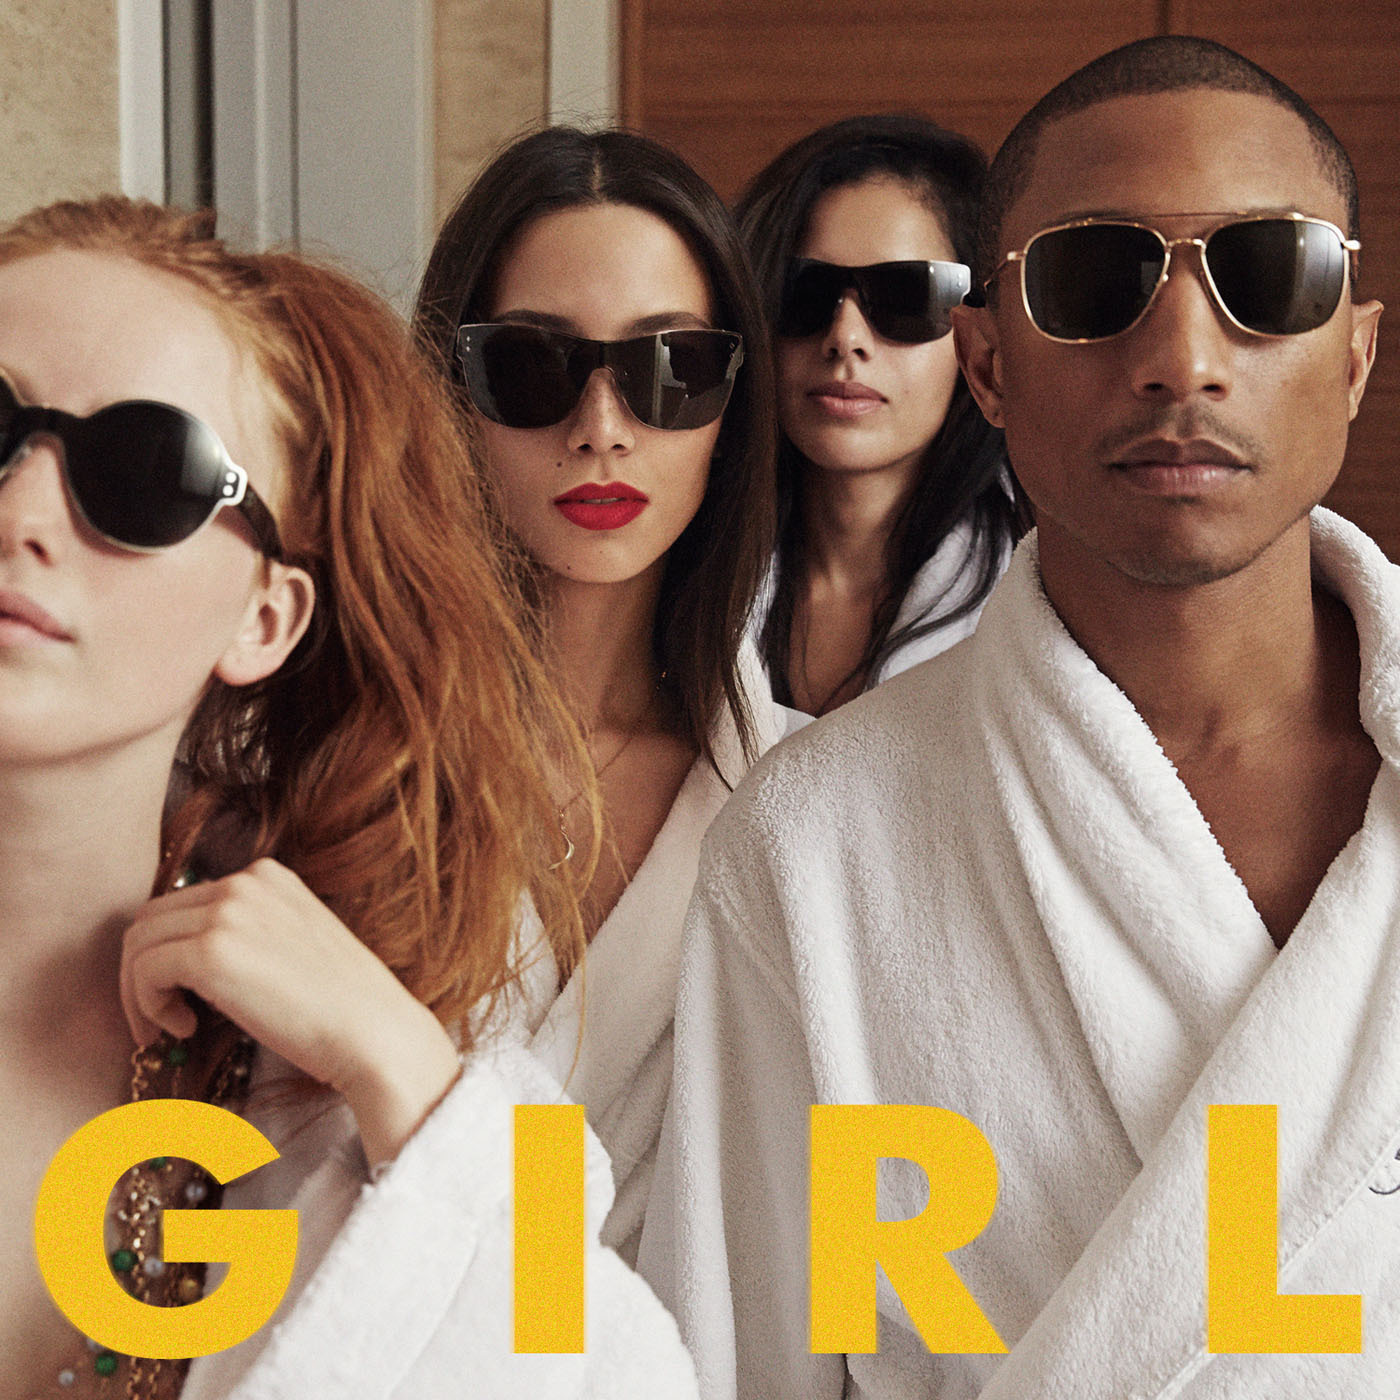 Pharrell Williams To Release New Album 'G 'I 'R 'L' on 3/3